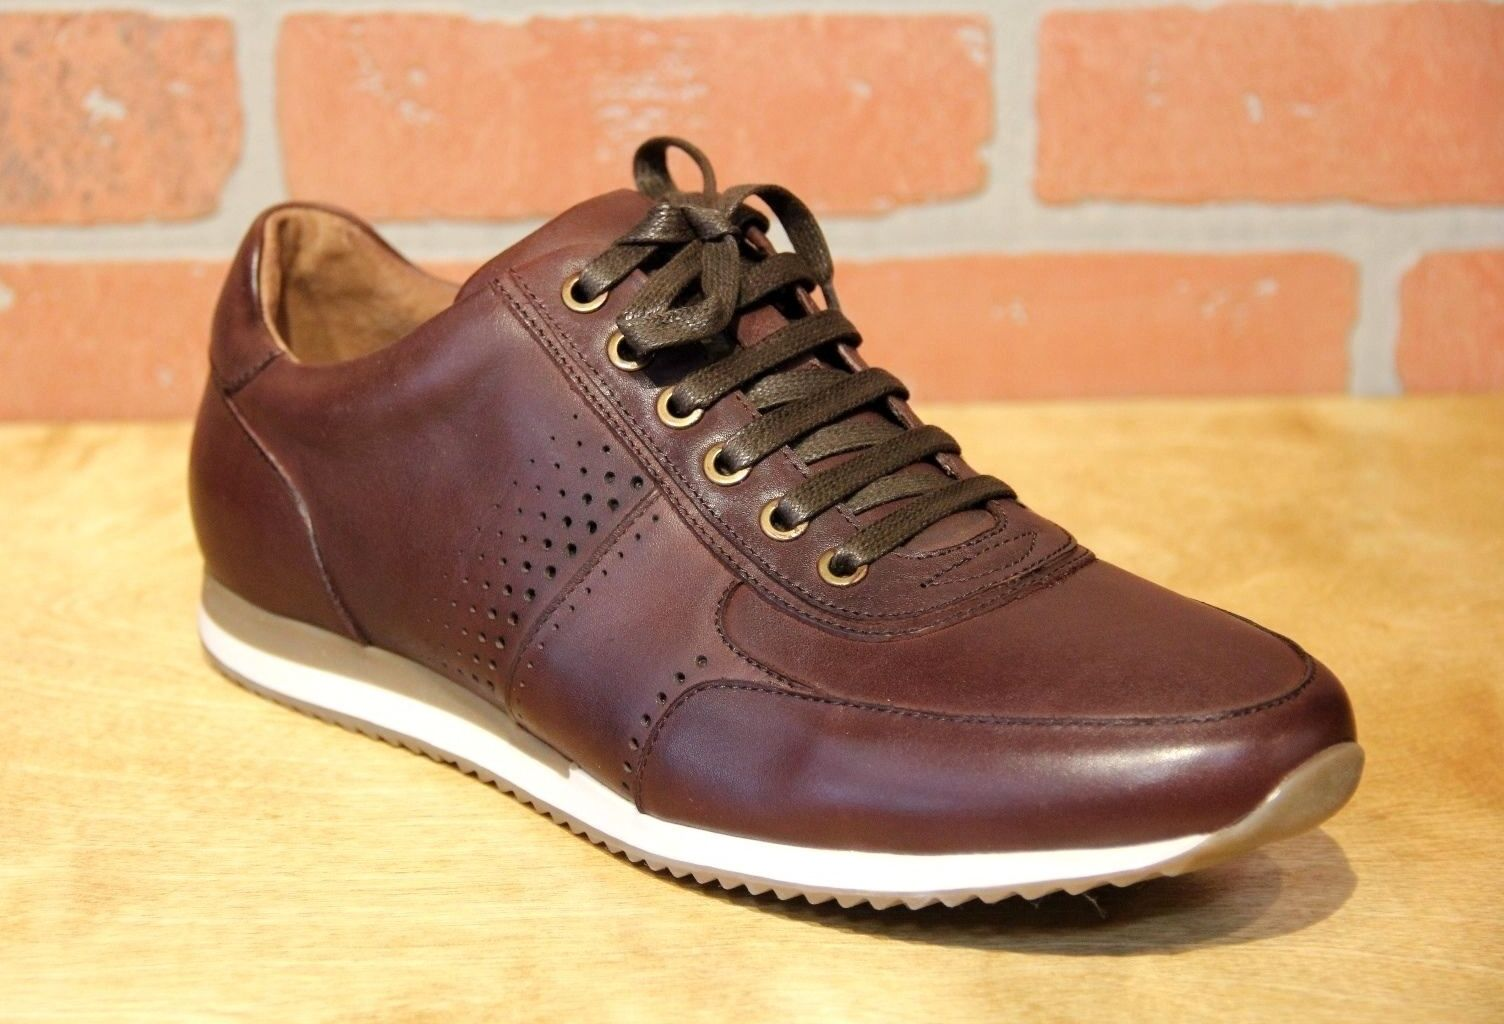 Bacco Bucci Men's Fashion Sneaker Leather Oxford shoes Fausto Meyer 6803 Brown